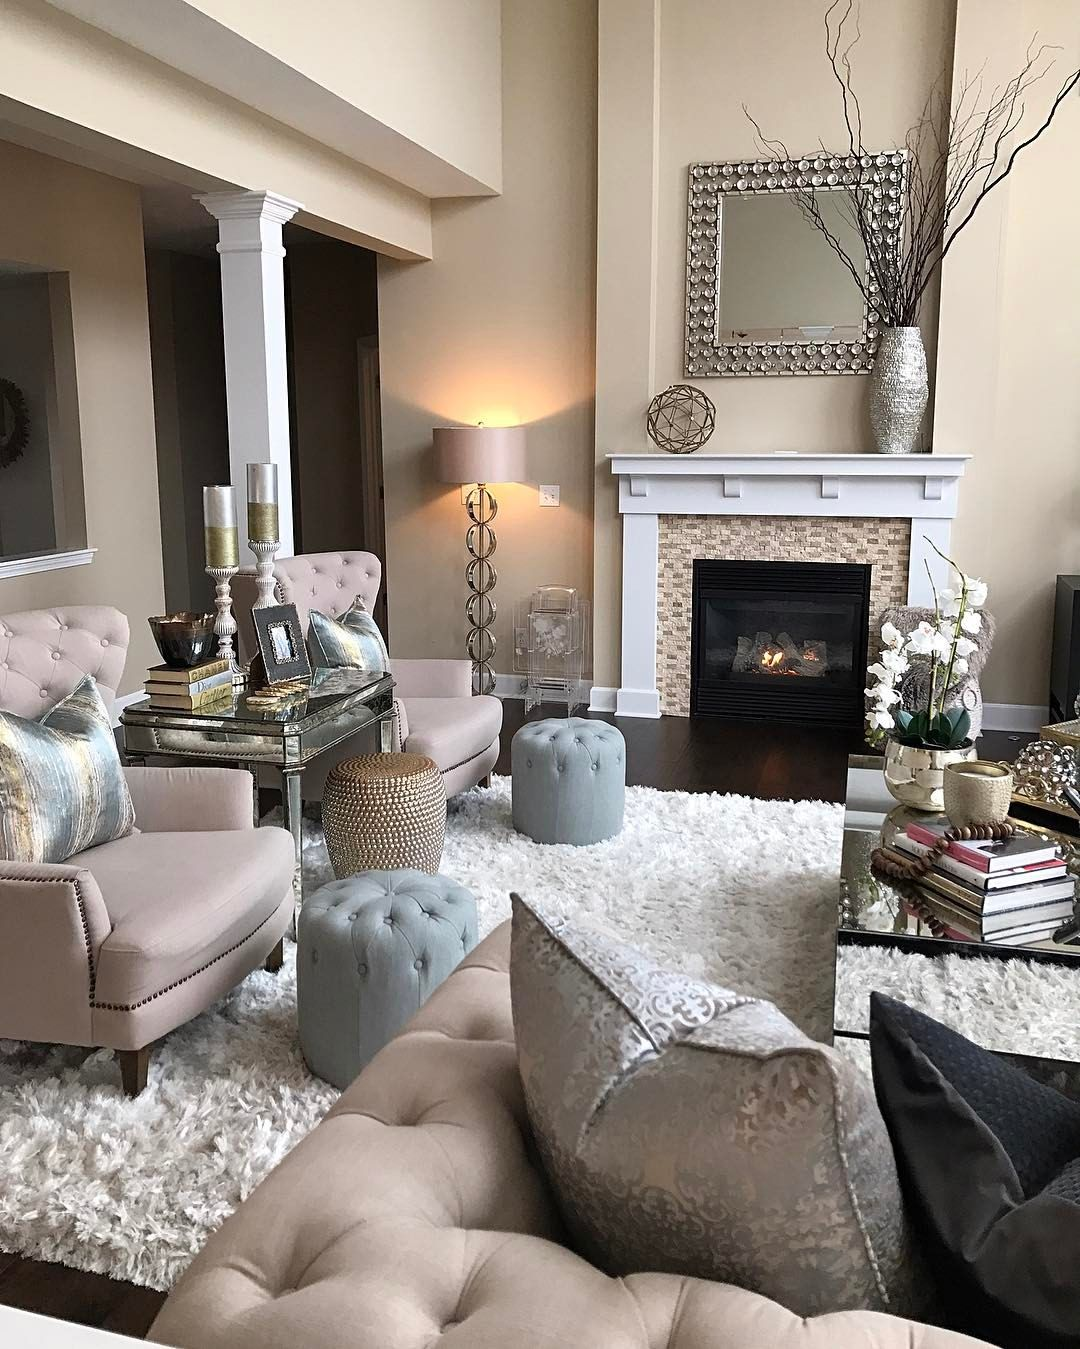 likes comments interior design  amp home decor inspire me also pin by sodany uch on    ideas pinterest rh